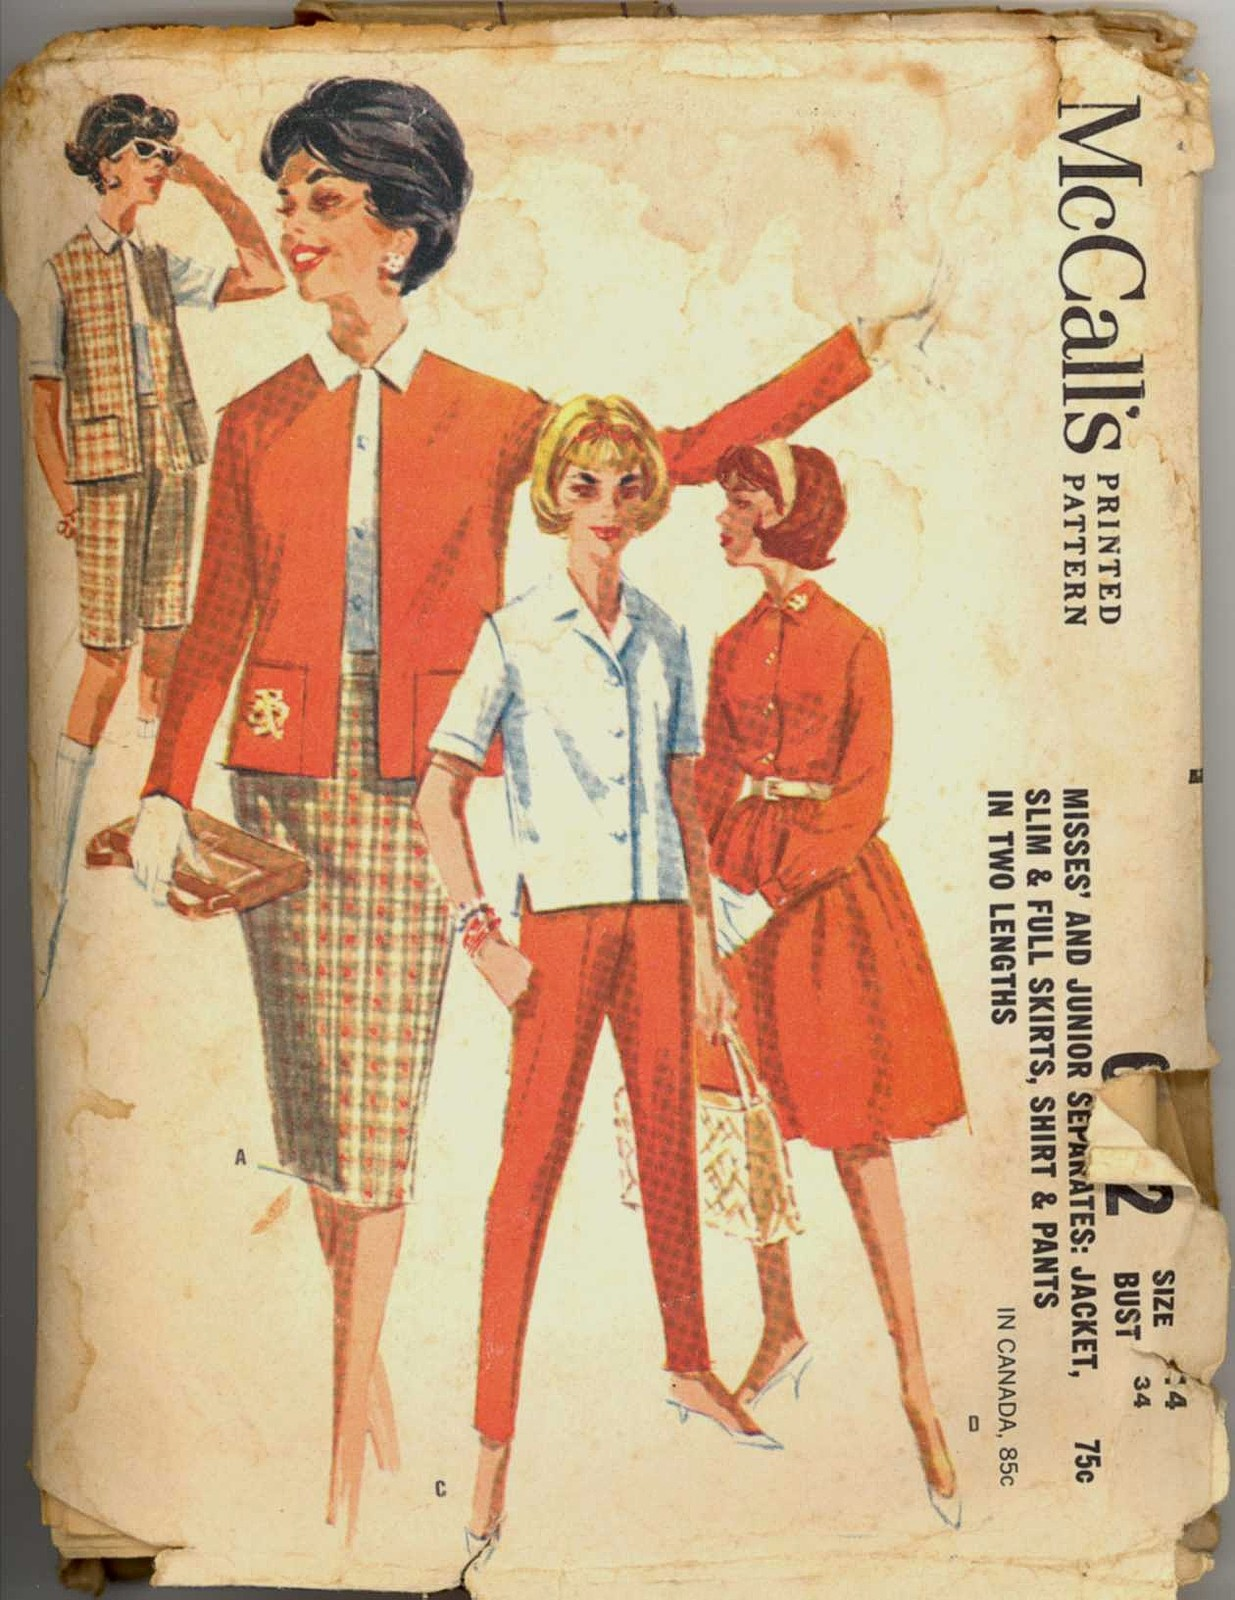 60s Size 14 Bust 34 Jacket Shirt Pant Skirt Shorts McCalls 6202 Pattern Vintage